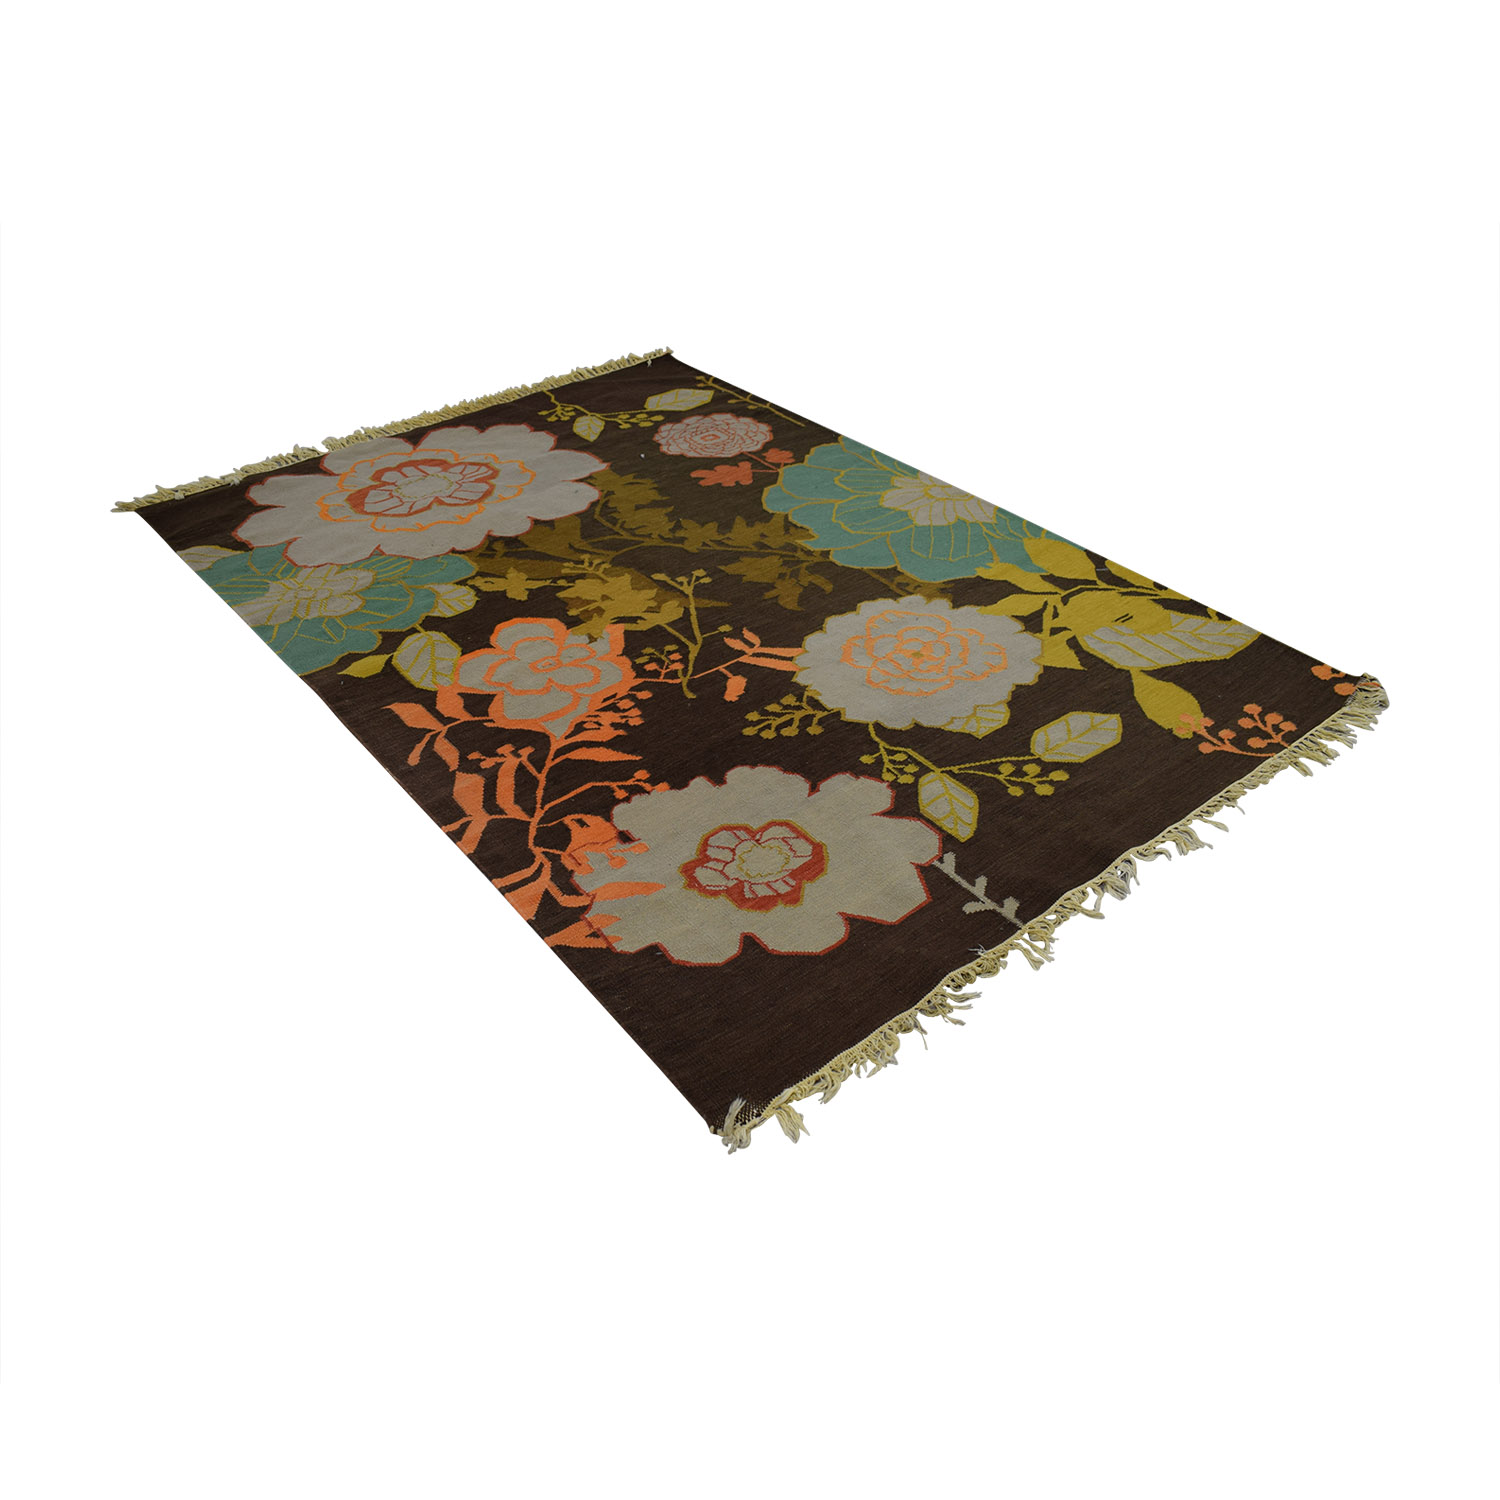 ABC Carpet & Home ABC Carpet & Home Brown Floral